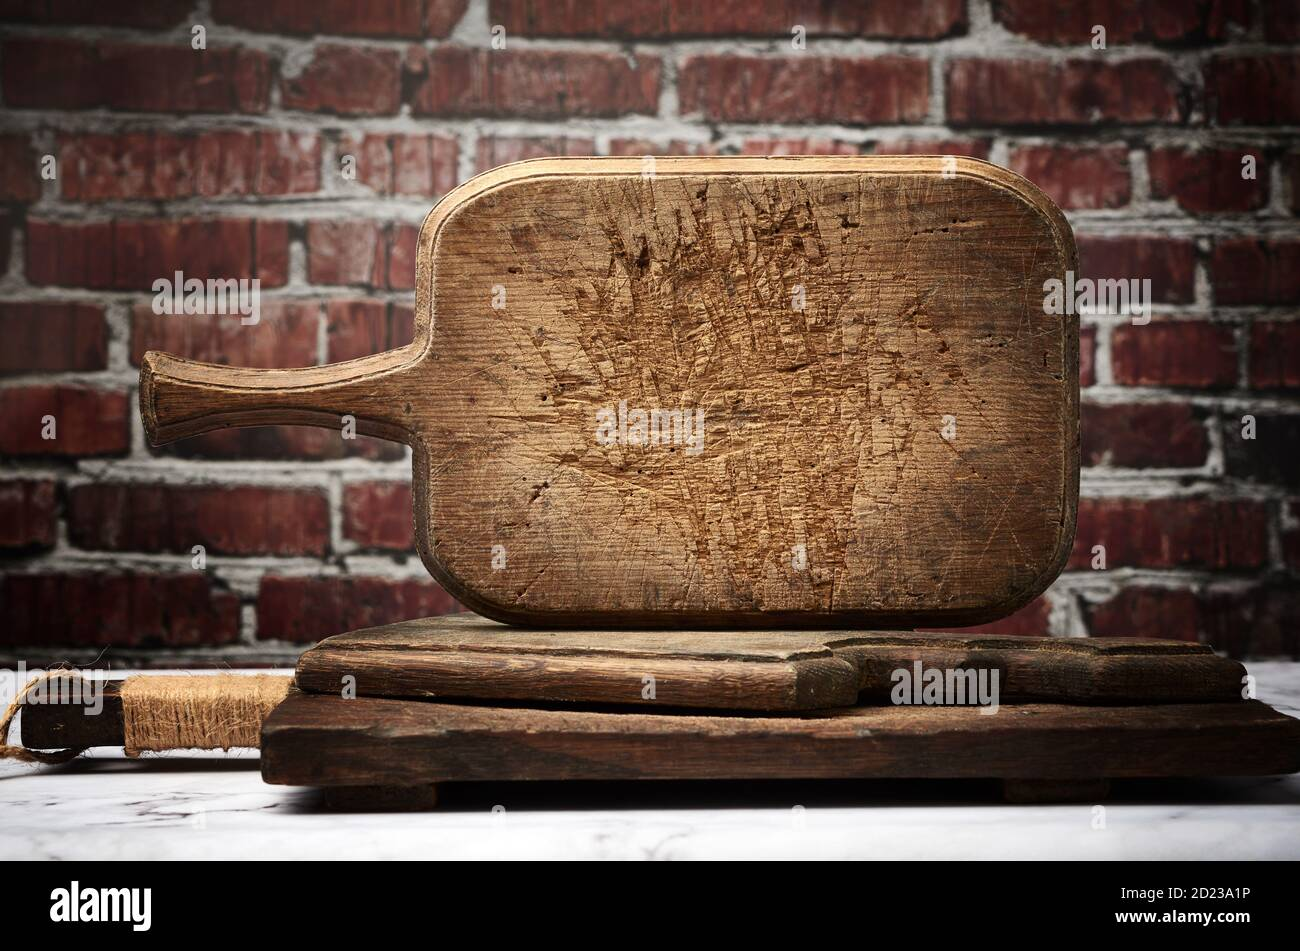 Very Old Vintage Rectangular Kitchen Cutting Board Against Brown Brick Wall Background Stock Photo Alamy